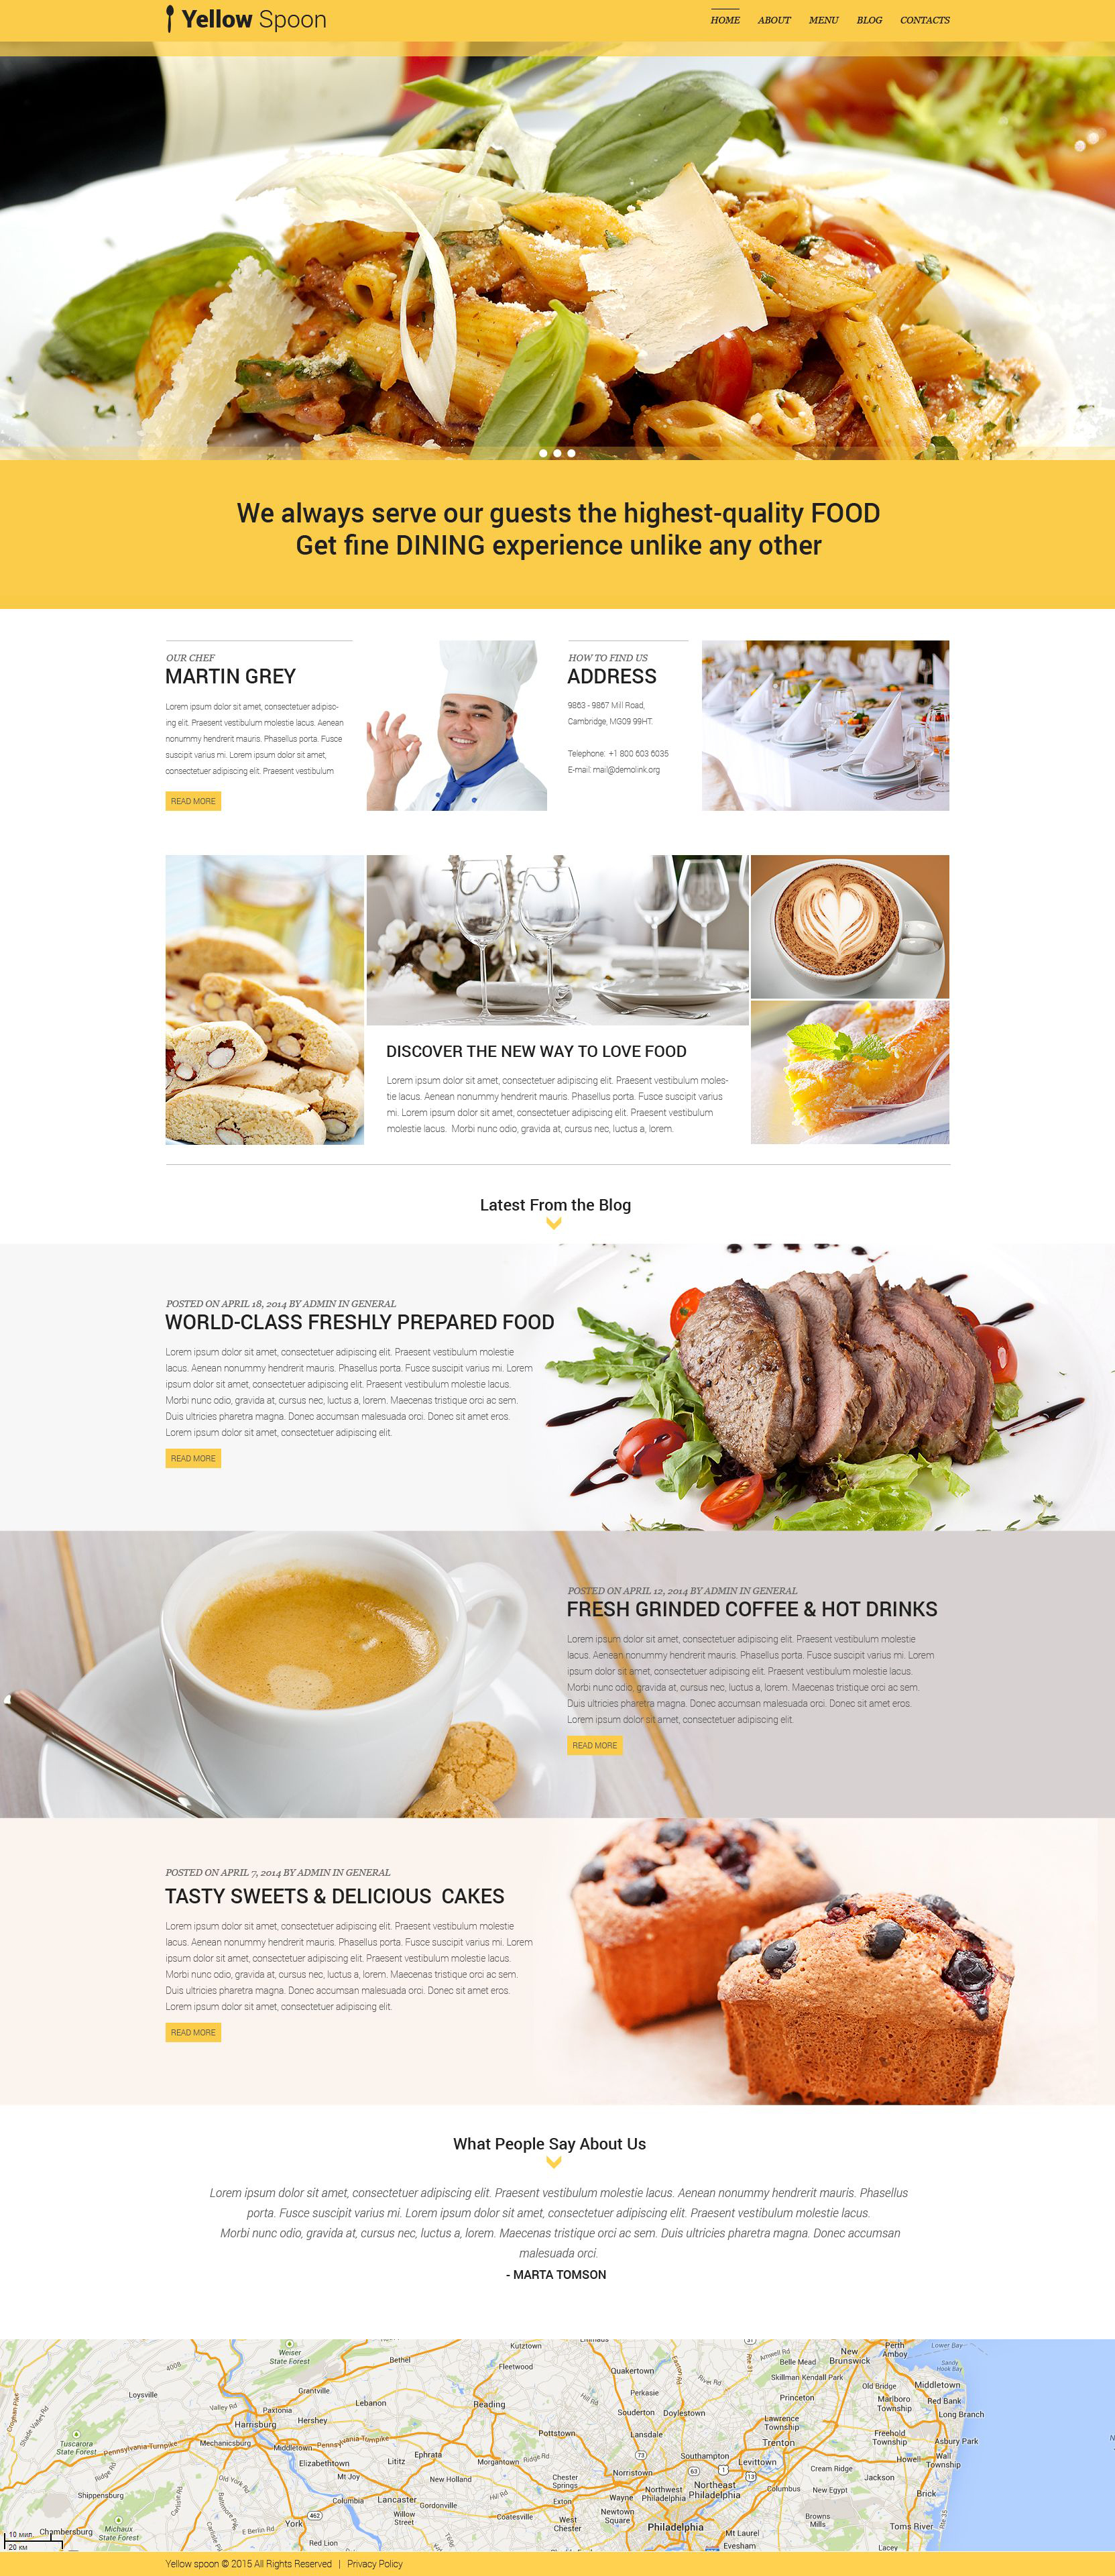 The Yellow Spoon Restaurant WordPress Design 53436, one of the best WordPress themes of its kind (cafe and restaurant, most popular), also known as yellow spoon restaurant WordPress template, cafe WordPress template, food WordPress template, meal WordPress template, cuisine WordPress template, drink WordPress template, menu WordPress template, waiters WordPress template, dish WordPress template, wine WordPress template, taste WordPress template, tasty WordPress template, flavor WordPress template, reservation WordPress template, specials WordPress template, recipe WordPress template, launch WordPress template, dinner WordPress template, testimonials WordPress template, offers WordPress template, kitchen WordPress template, cookbook WordPress template, vegetarian WordPress template, cocktail WordPress template, beverage WordPress template, specials WordPress template, gifts WordPress template, bonuses WordPress template, discount WordPress template, patrons WordPress template, reservation and related with yellow spoon restaurant, cafe, food, meal, cuisine, drink, menu, waiters, dish, wine, taste, tasty, flavor, reservation, specials, recipe, launch, dinner, testimonials, offers, kitchen, cookbook, vegetarian, cocktail, beverage, specials, gifts, bonuses, discount, patrons, reservation, etc.